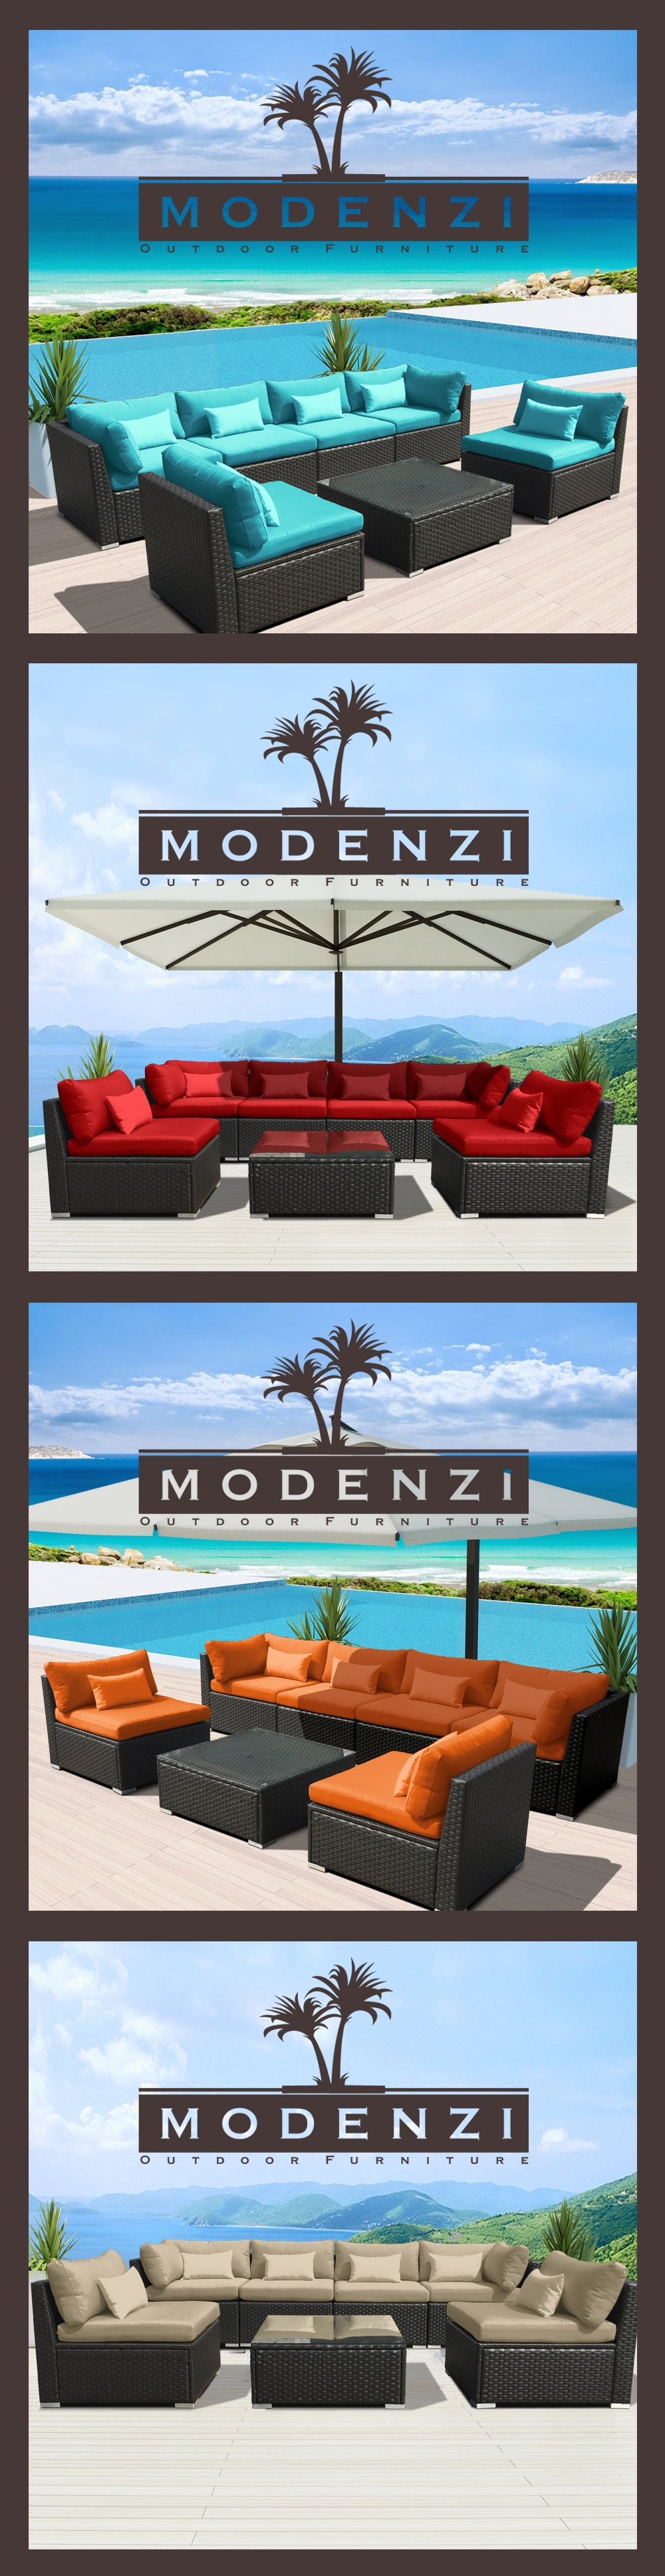 For a Limited time $699 Including shipping Modern Modenzi 7G U